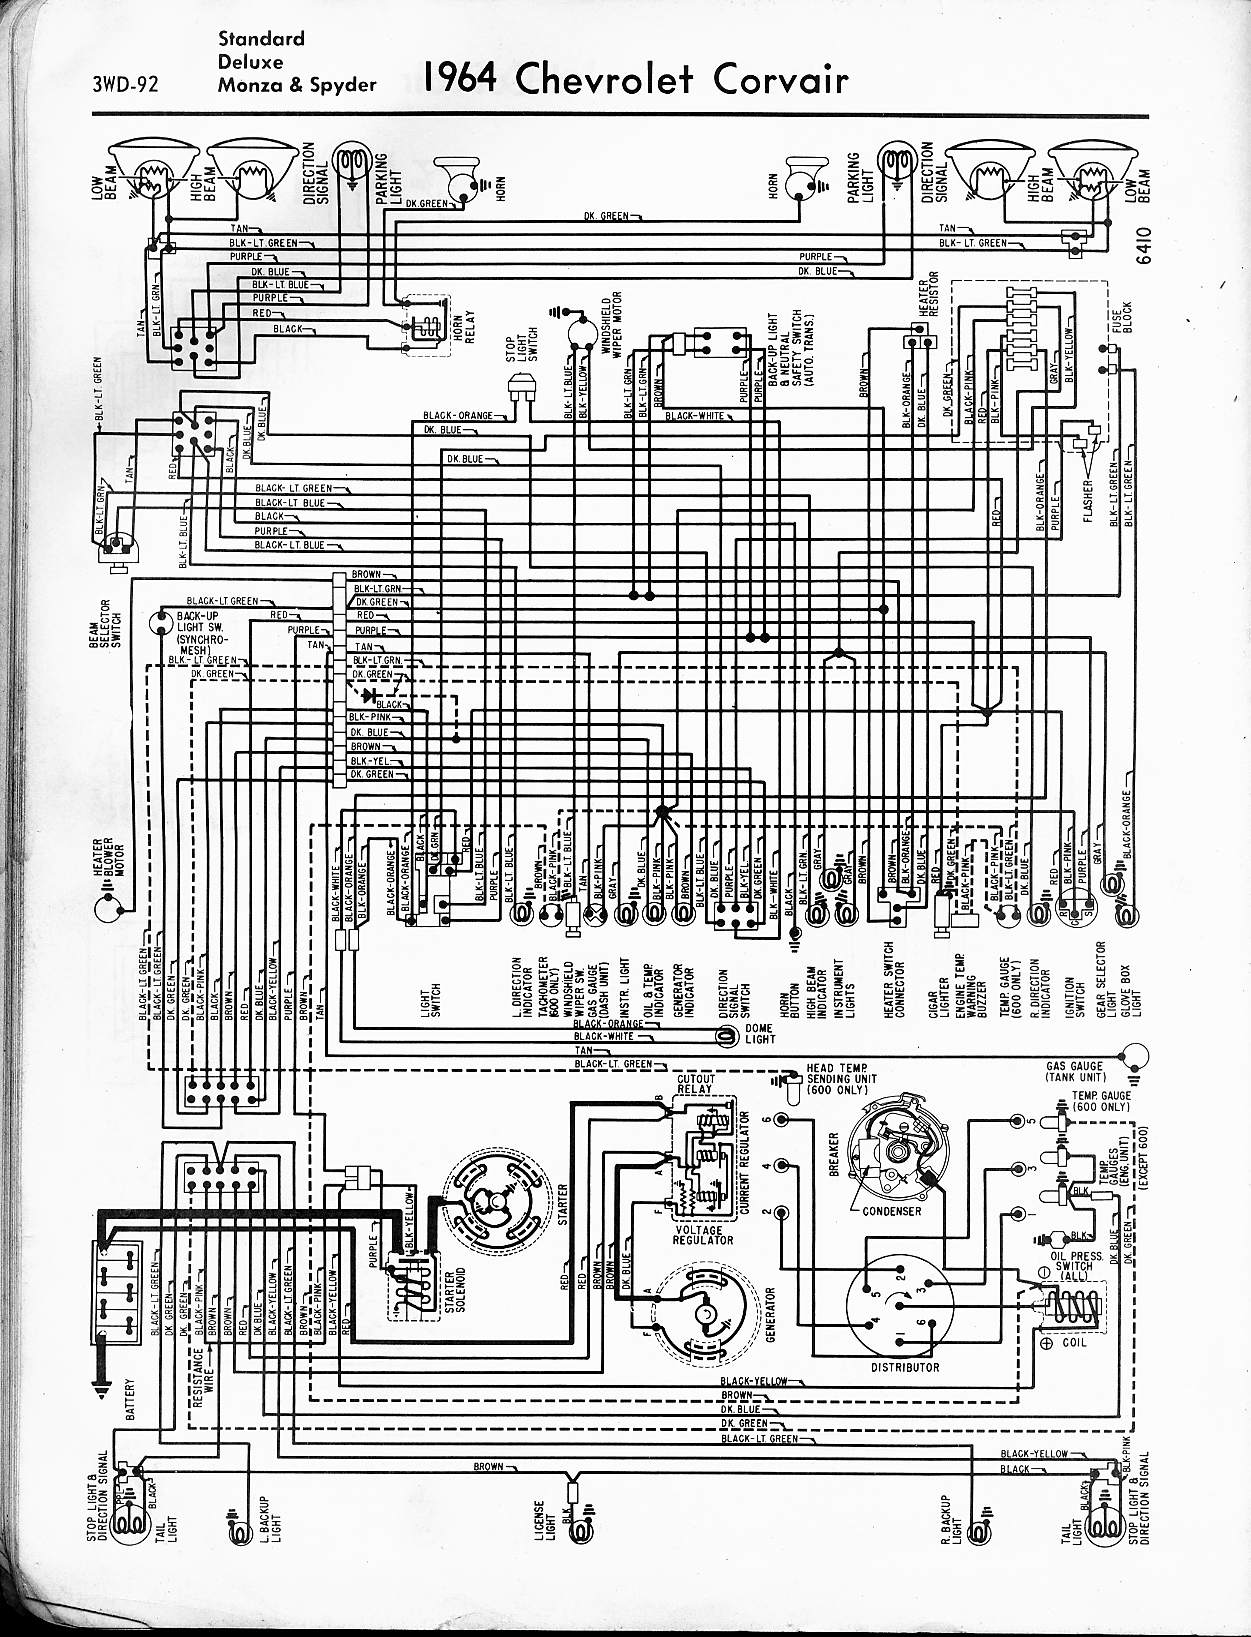 1965 Chevy Impala Wiring Diagram Free Download Electrical Biscayne 57 65 Diagrams Rh Oldcarmanualproject Com 1960 1963